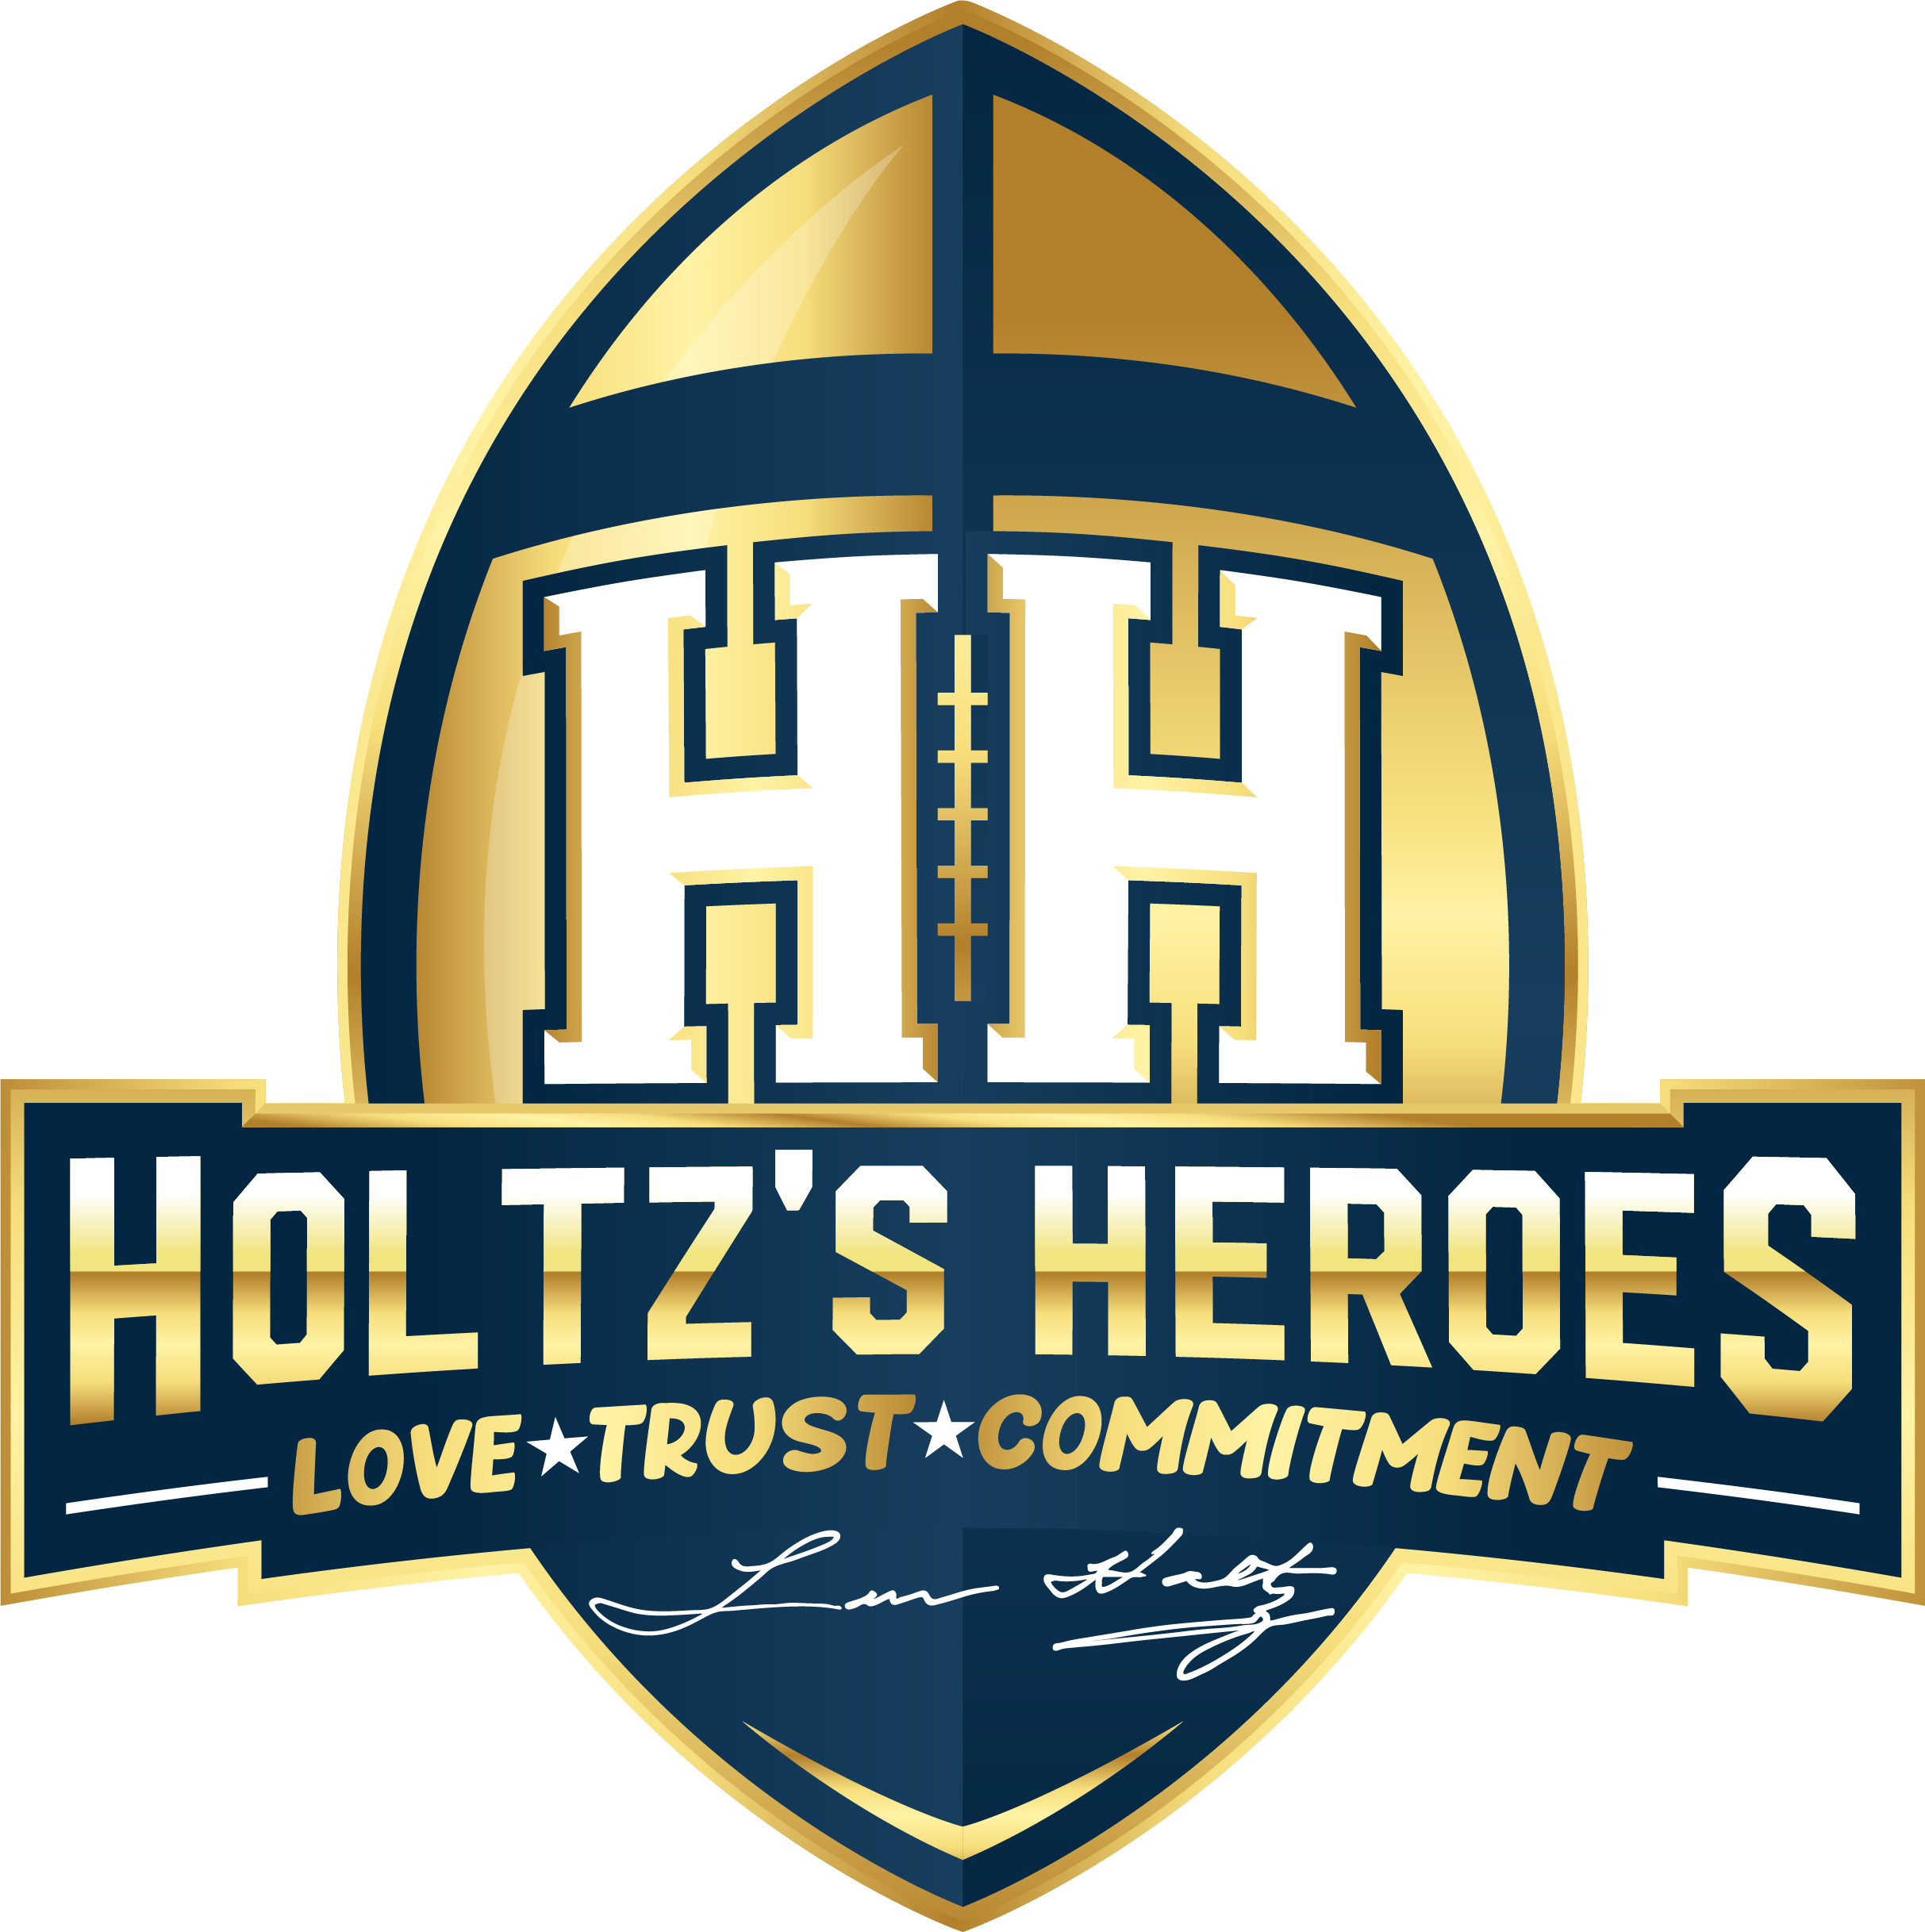 Beyond Playing Sports: Holtz's Heroes Needs Your Help